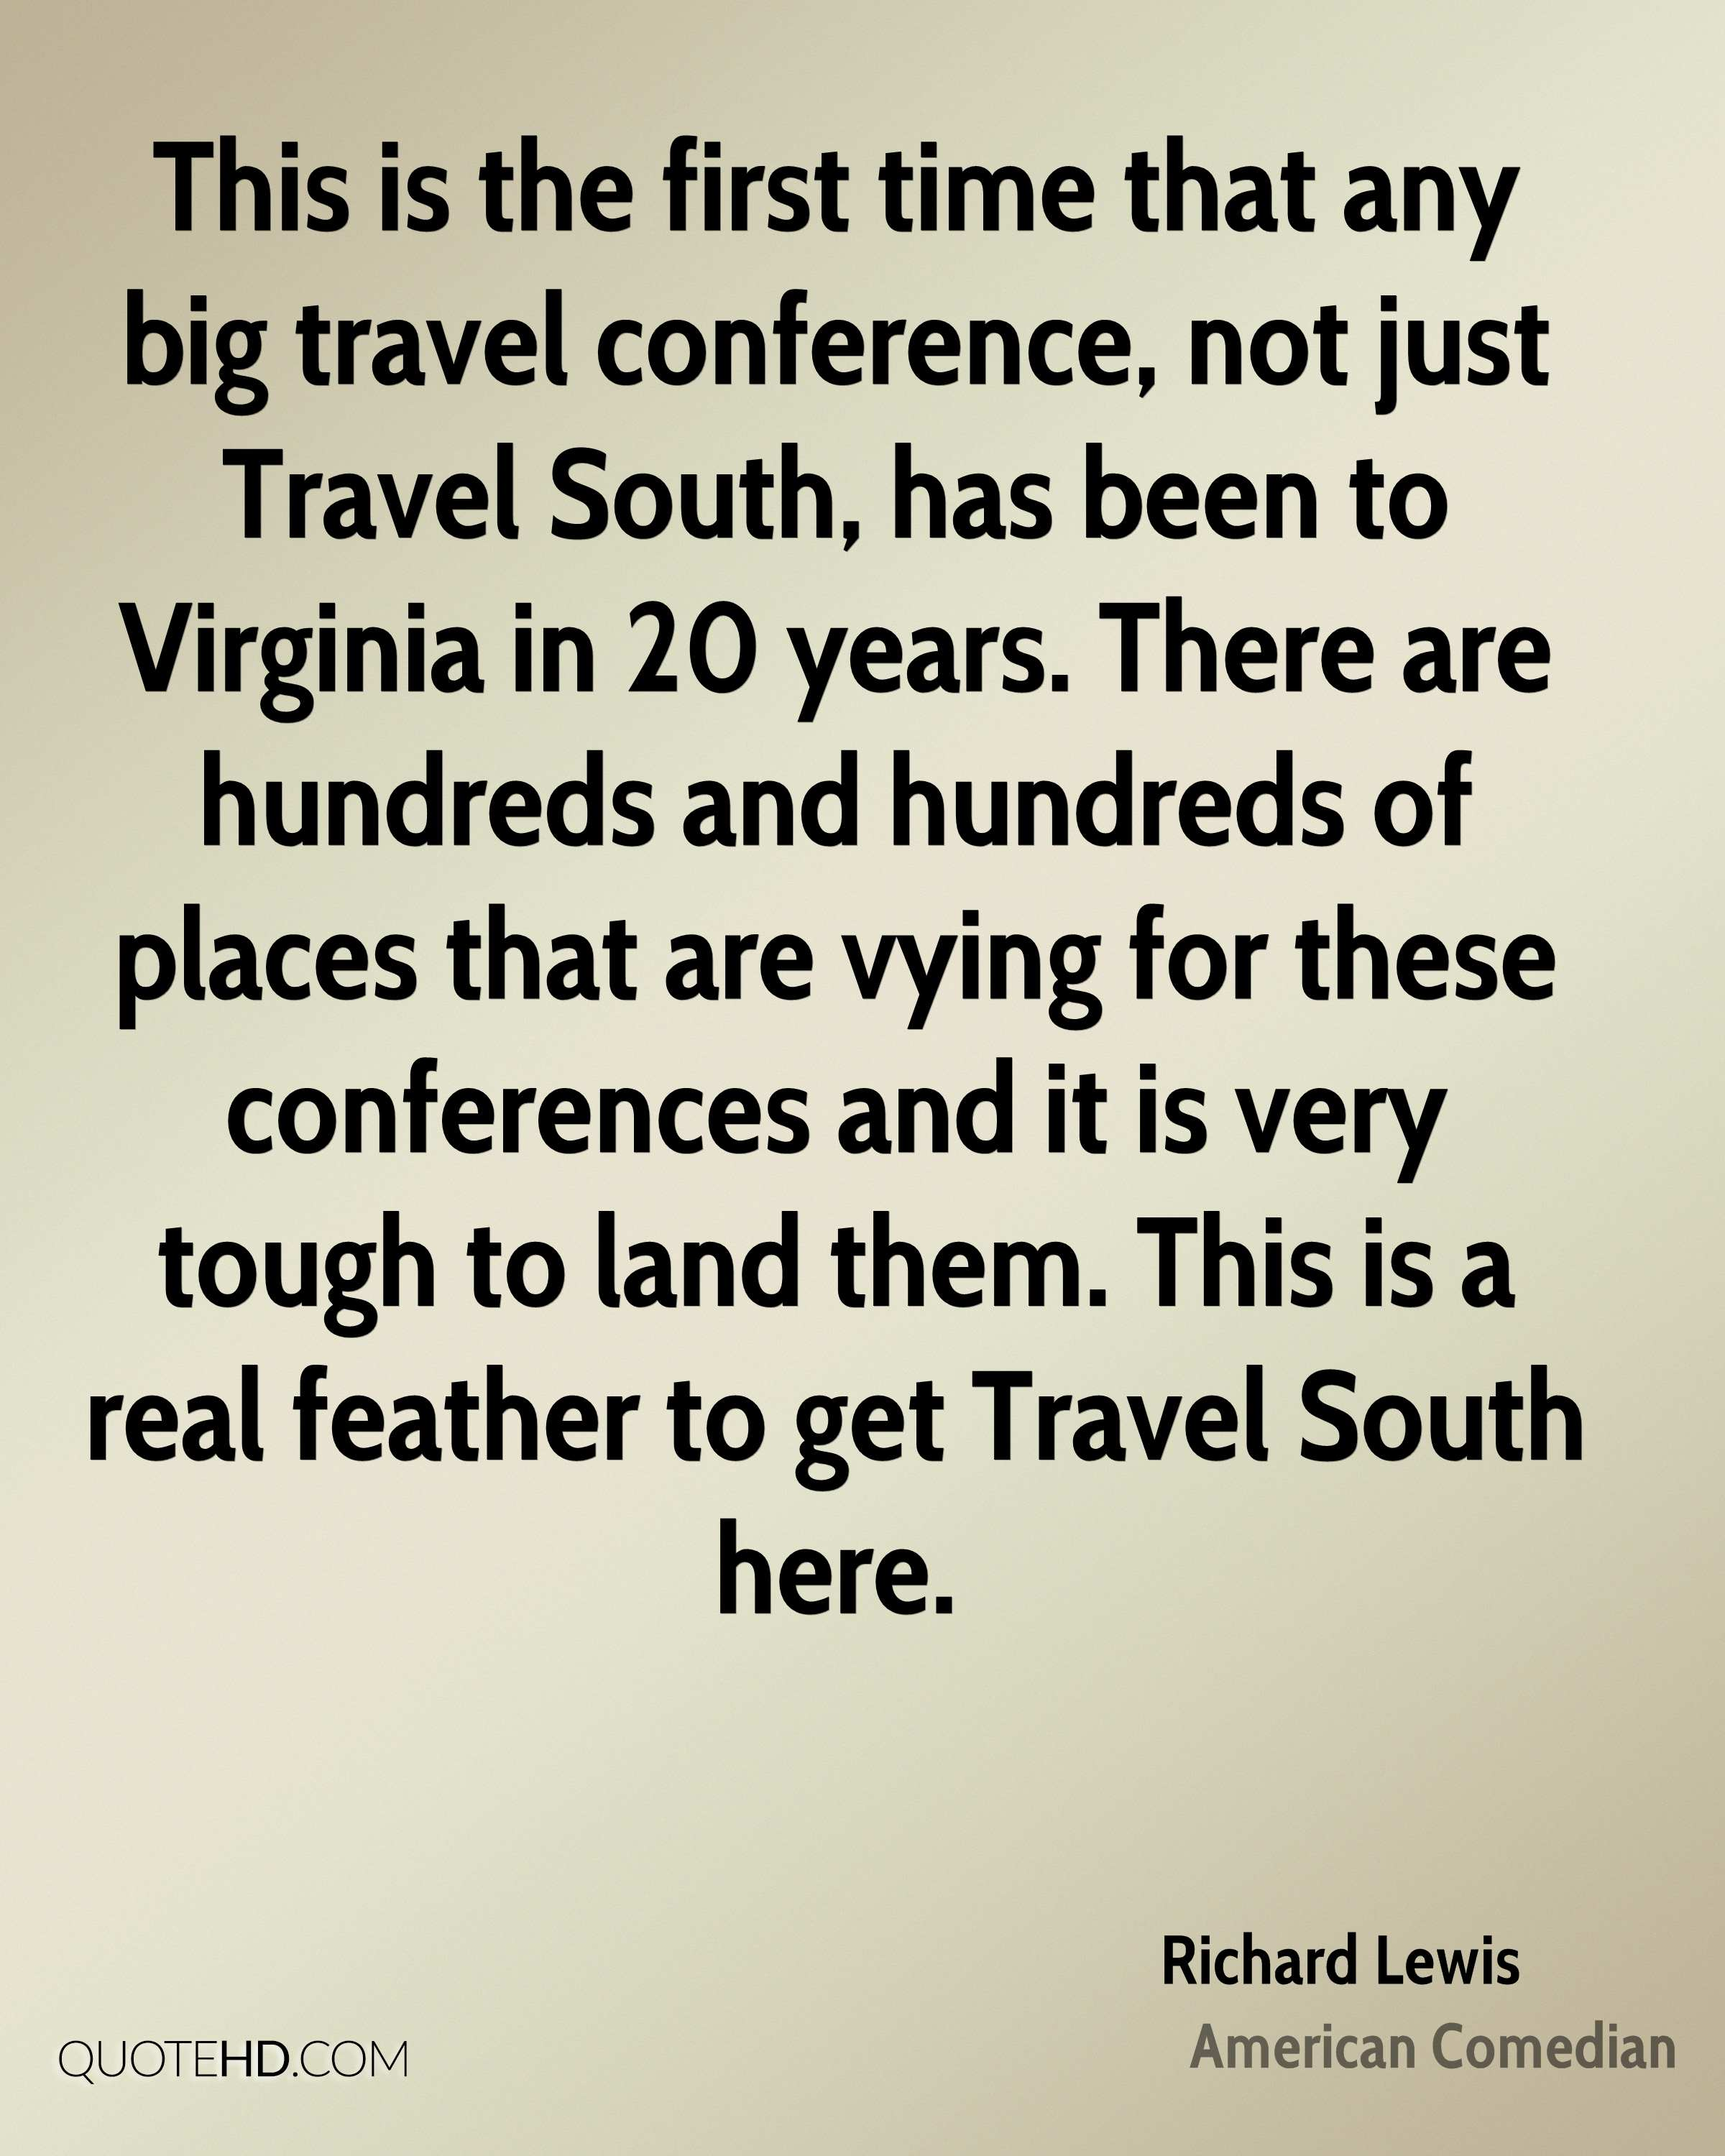 This is the first time that any big travel conference, not just Travel South, has been to Virginia in 20 years. There are hundreds and hundreds of places that are vying for these conferences and it is very tough to land them. This is a real feather to get Travel South here.